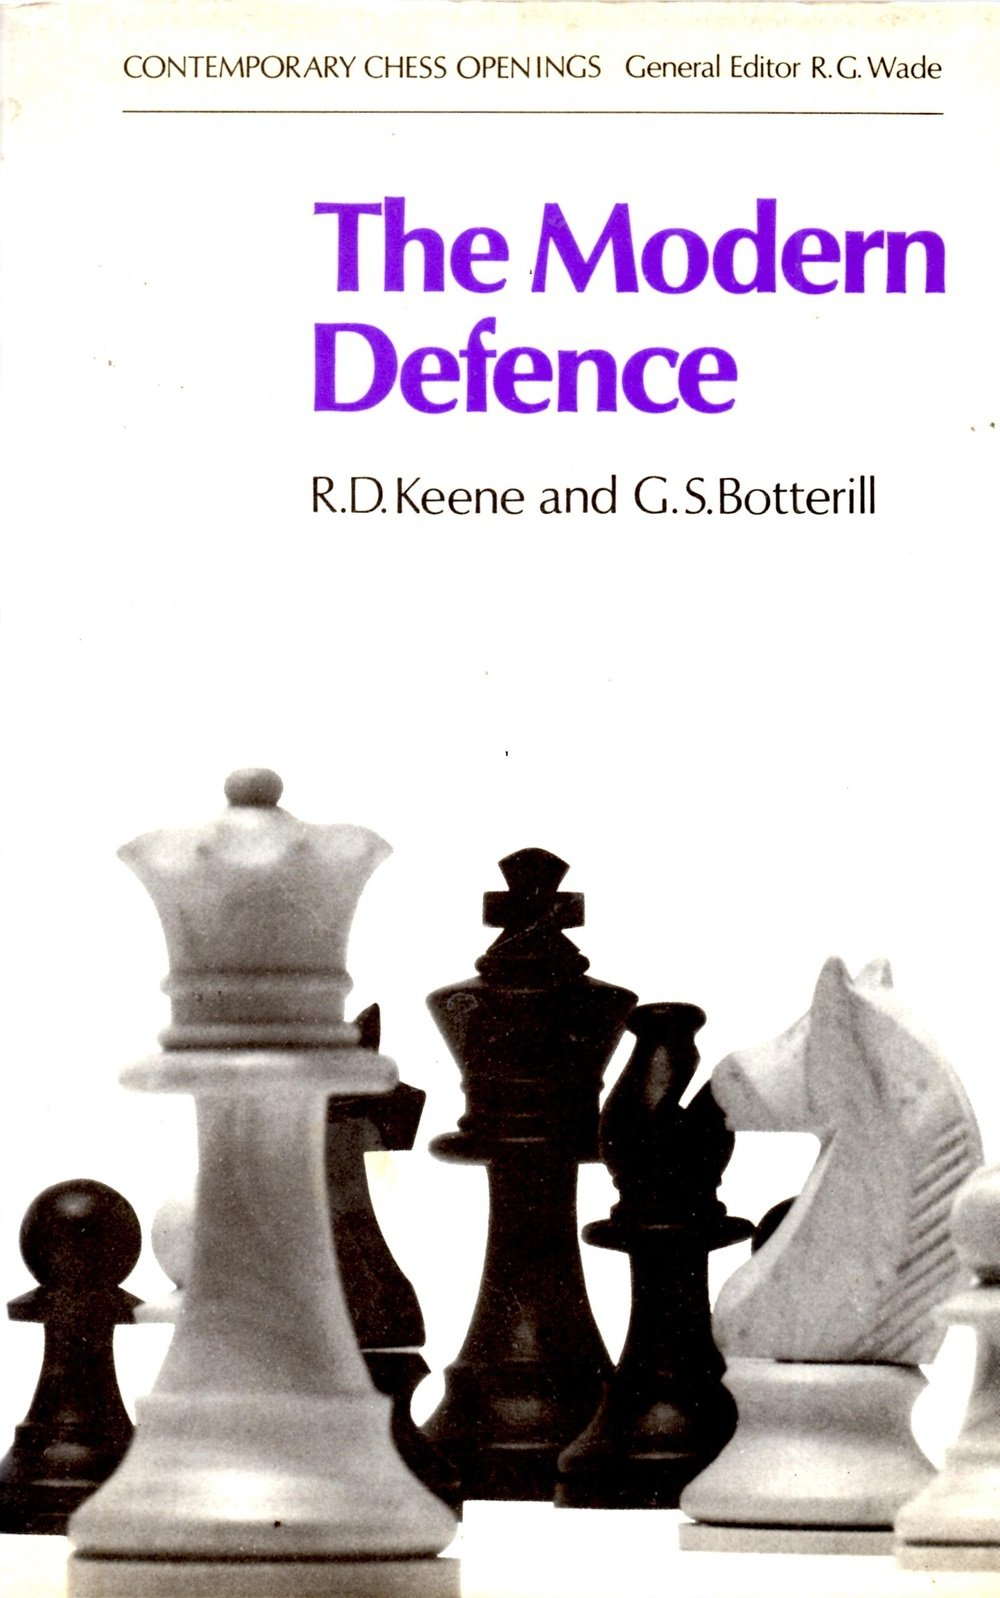 The Modern Defence, BT Batsford, 1972, GS Botterill and RD Keene